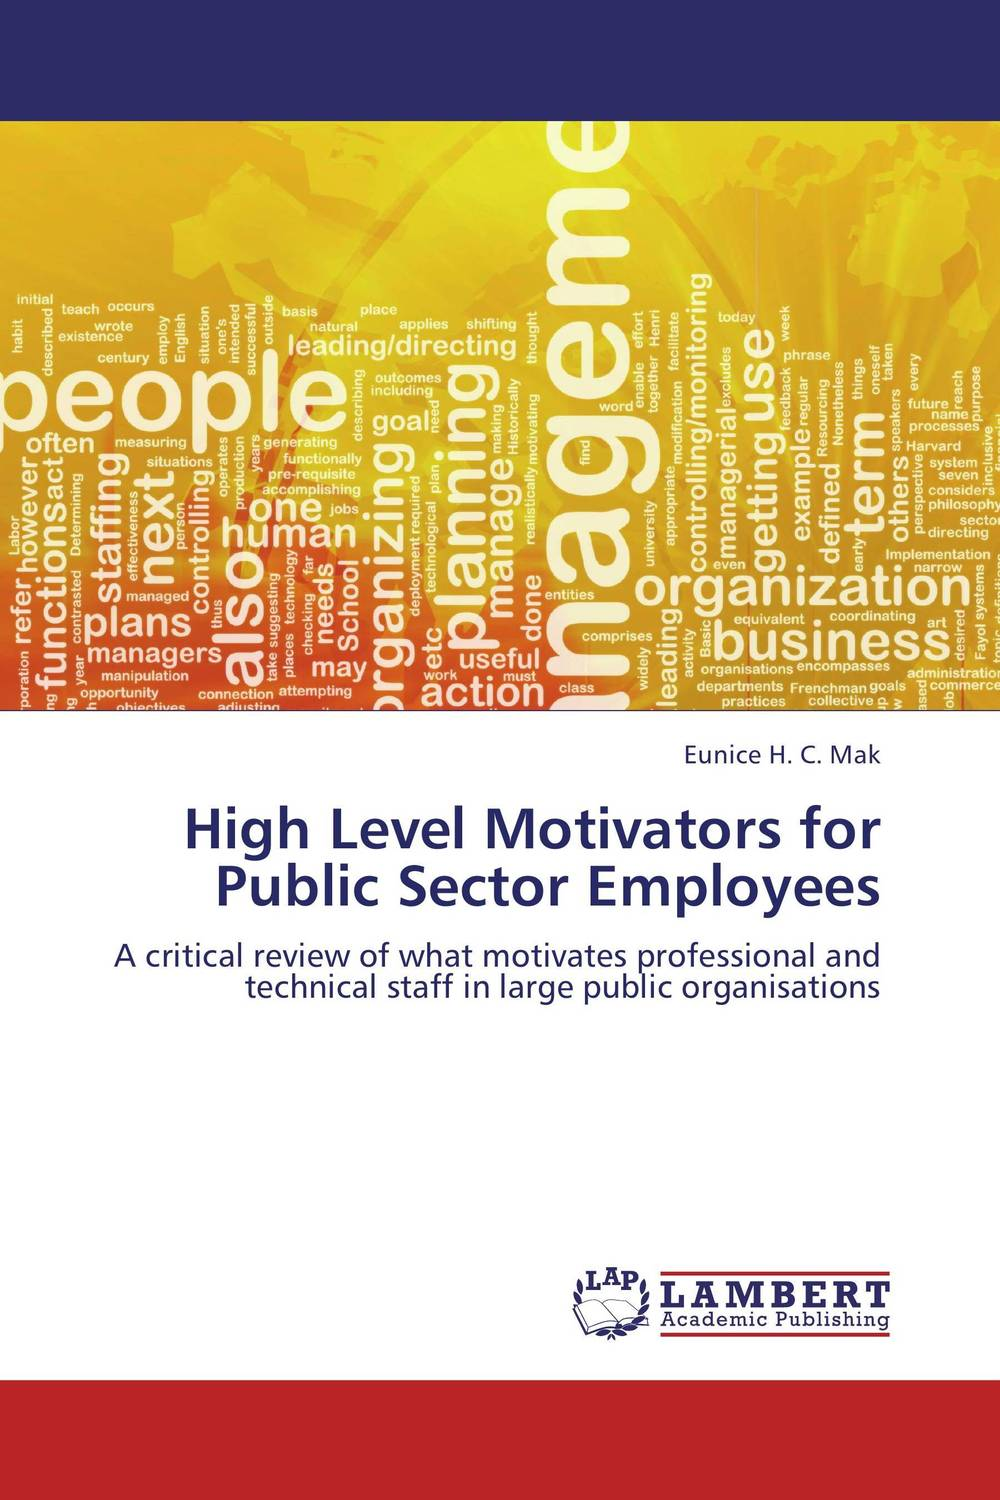 High Level Motivators for Public Sector Employees